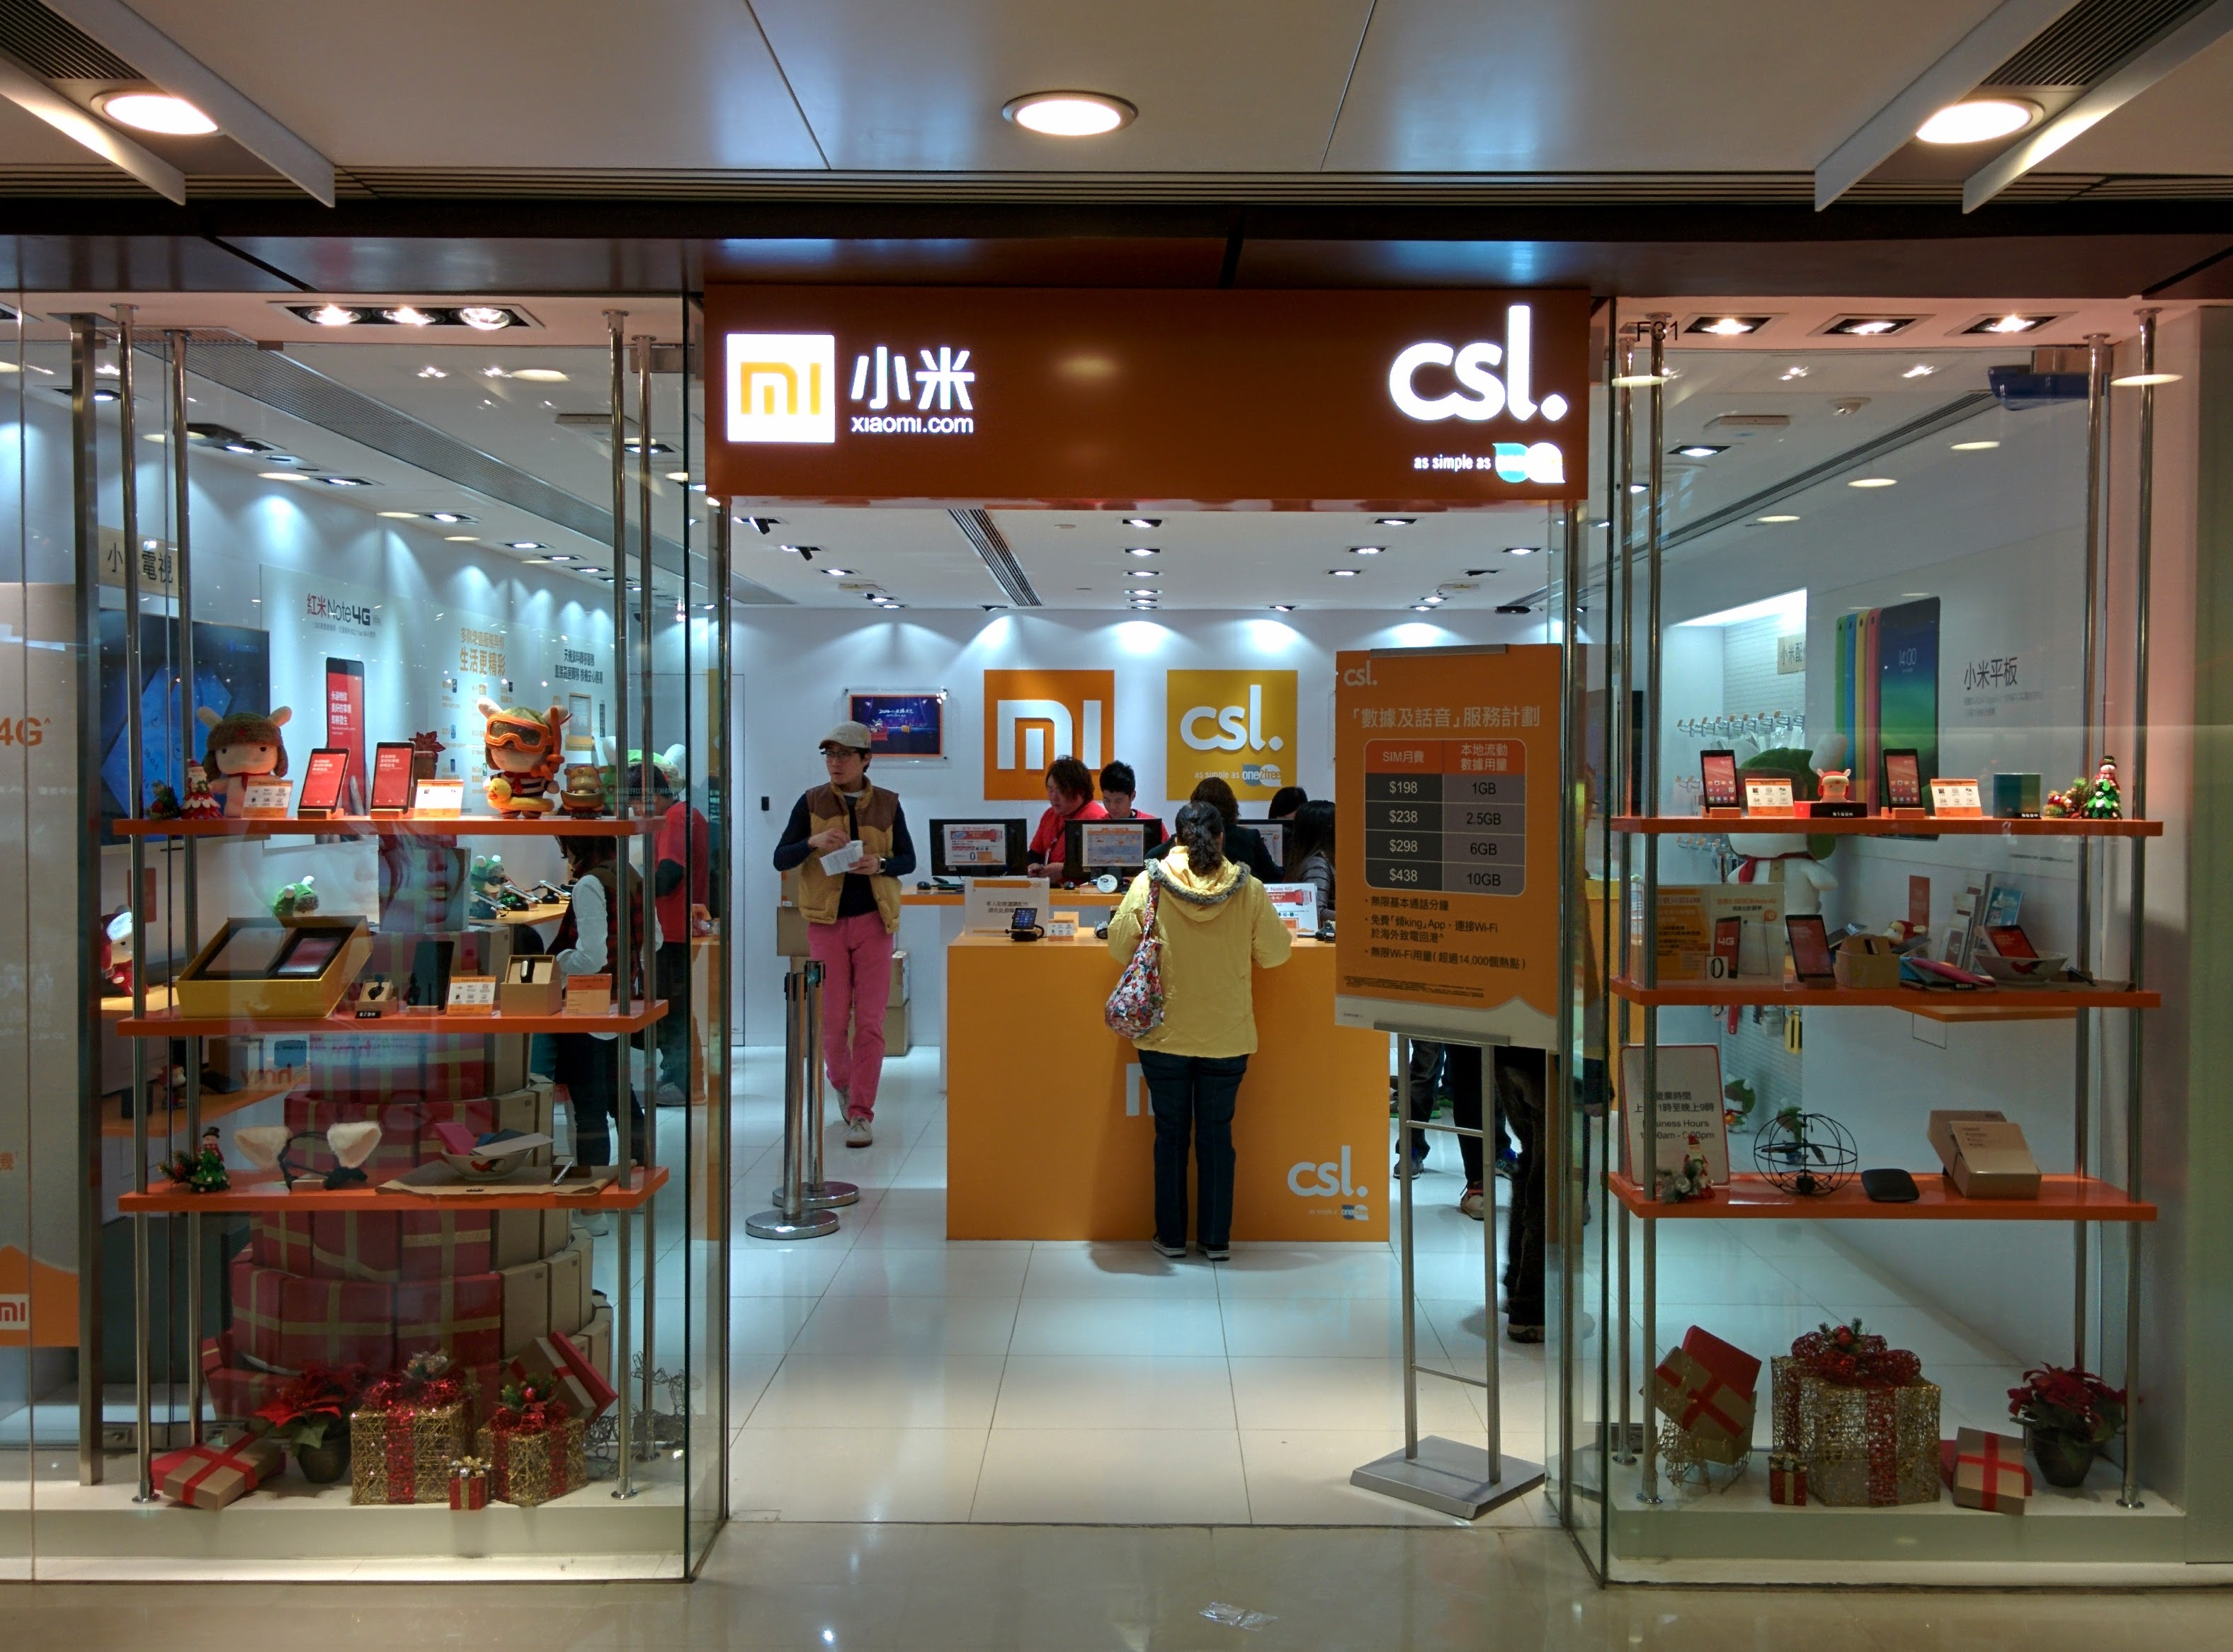 The World's One and Only Xiaomi Store – acurrie.me